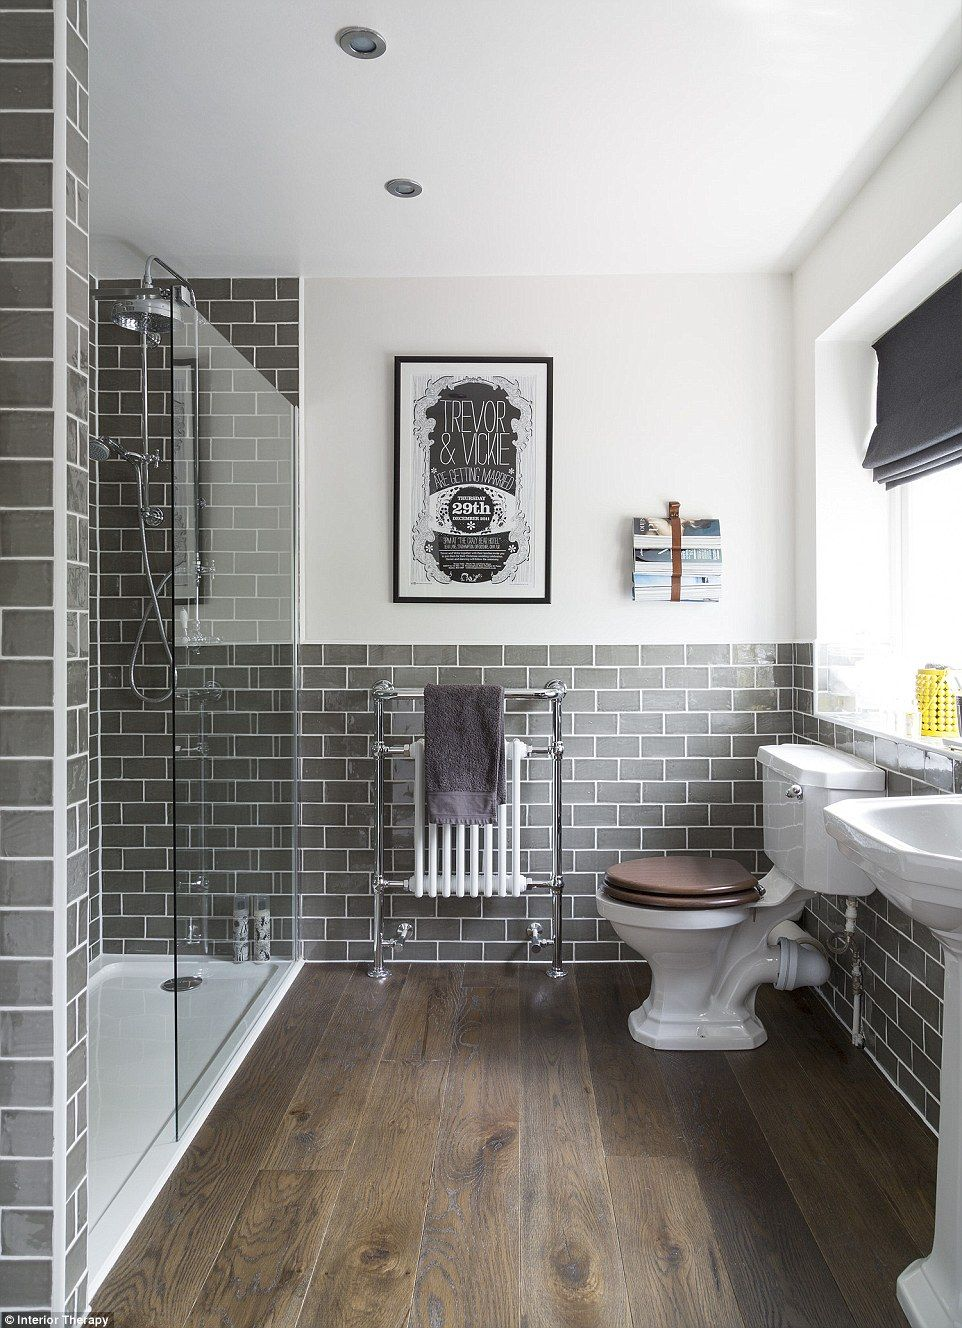 Photos Of Tiled Bathrooms 25 Stunning Bathroom Decor & Design Ideas To Inspire You  Grey